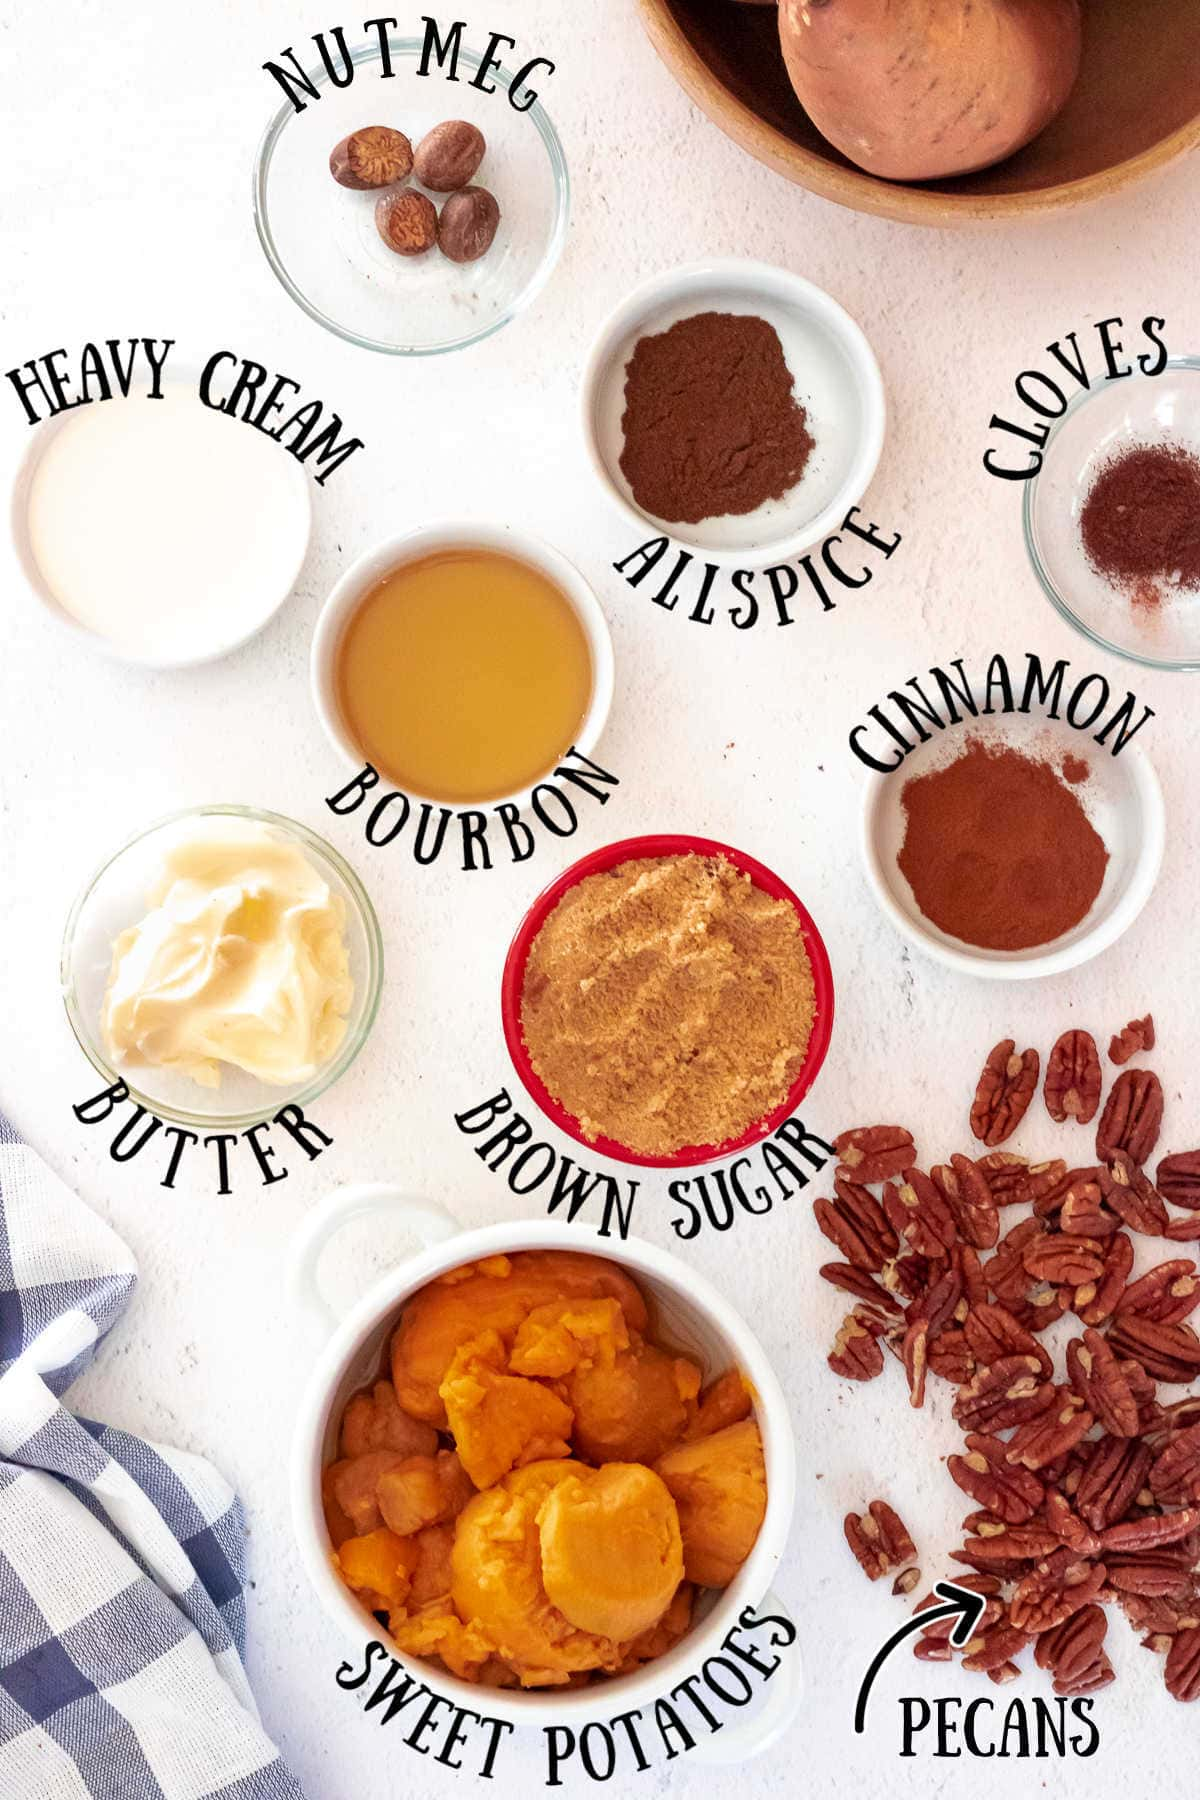 Labeled ingredients for sweet potato crunch recipe.